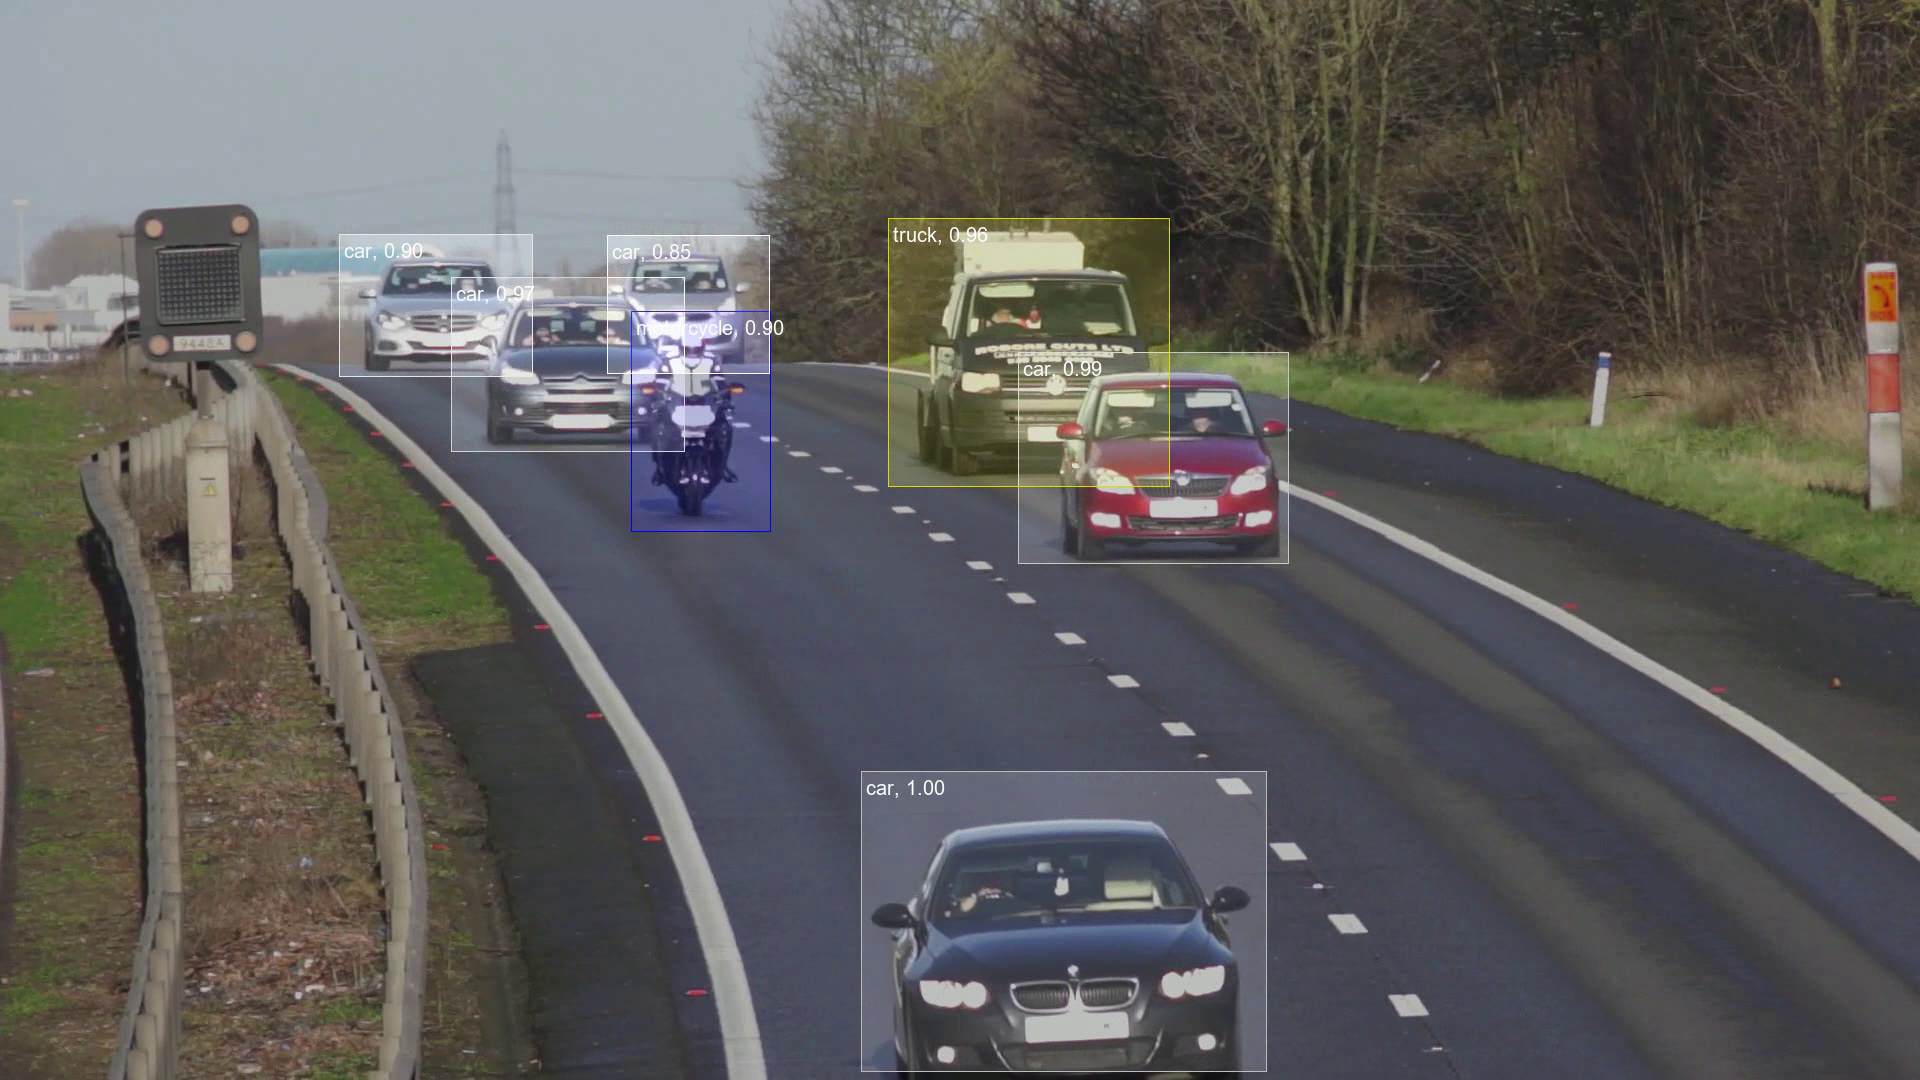 Real world deep learning application with video cameras